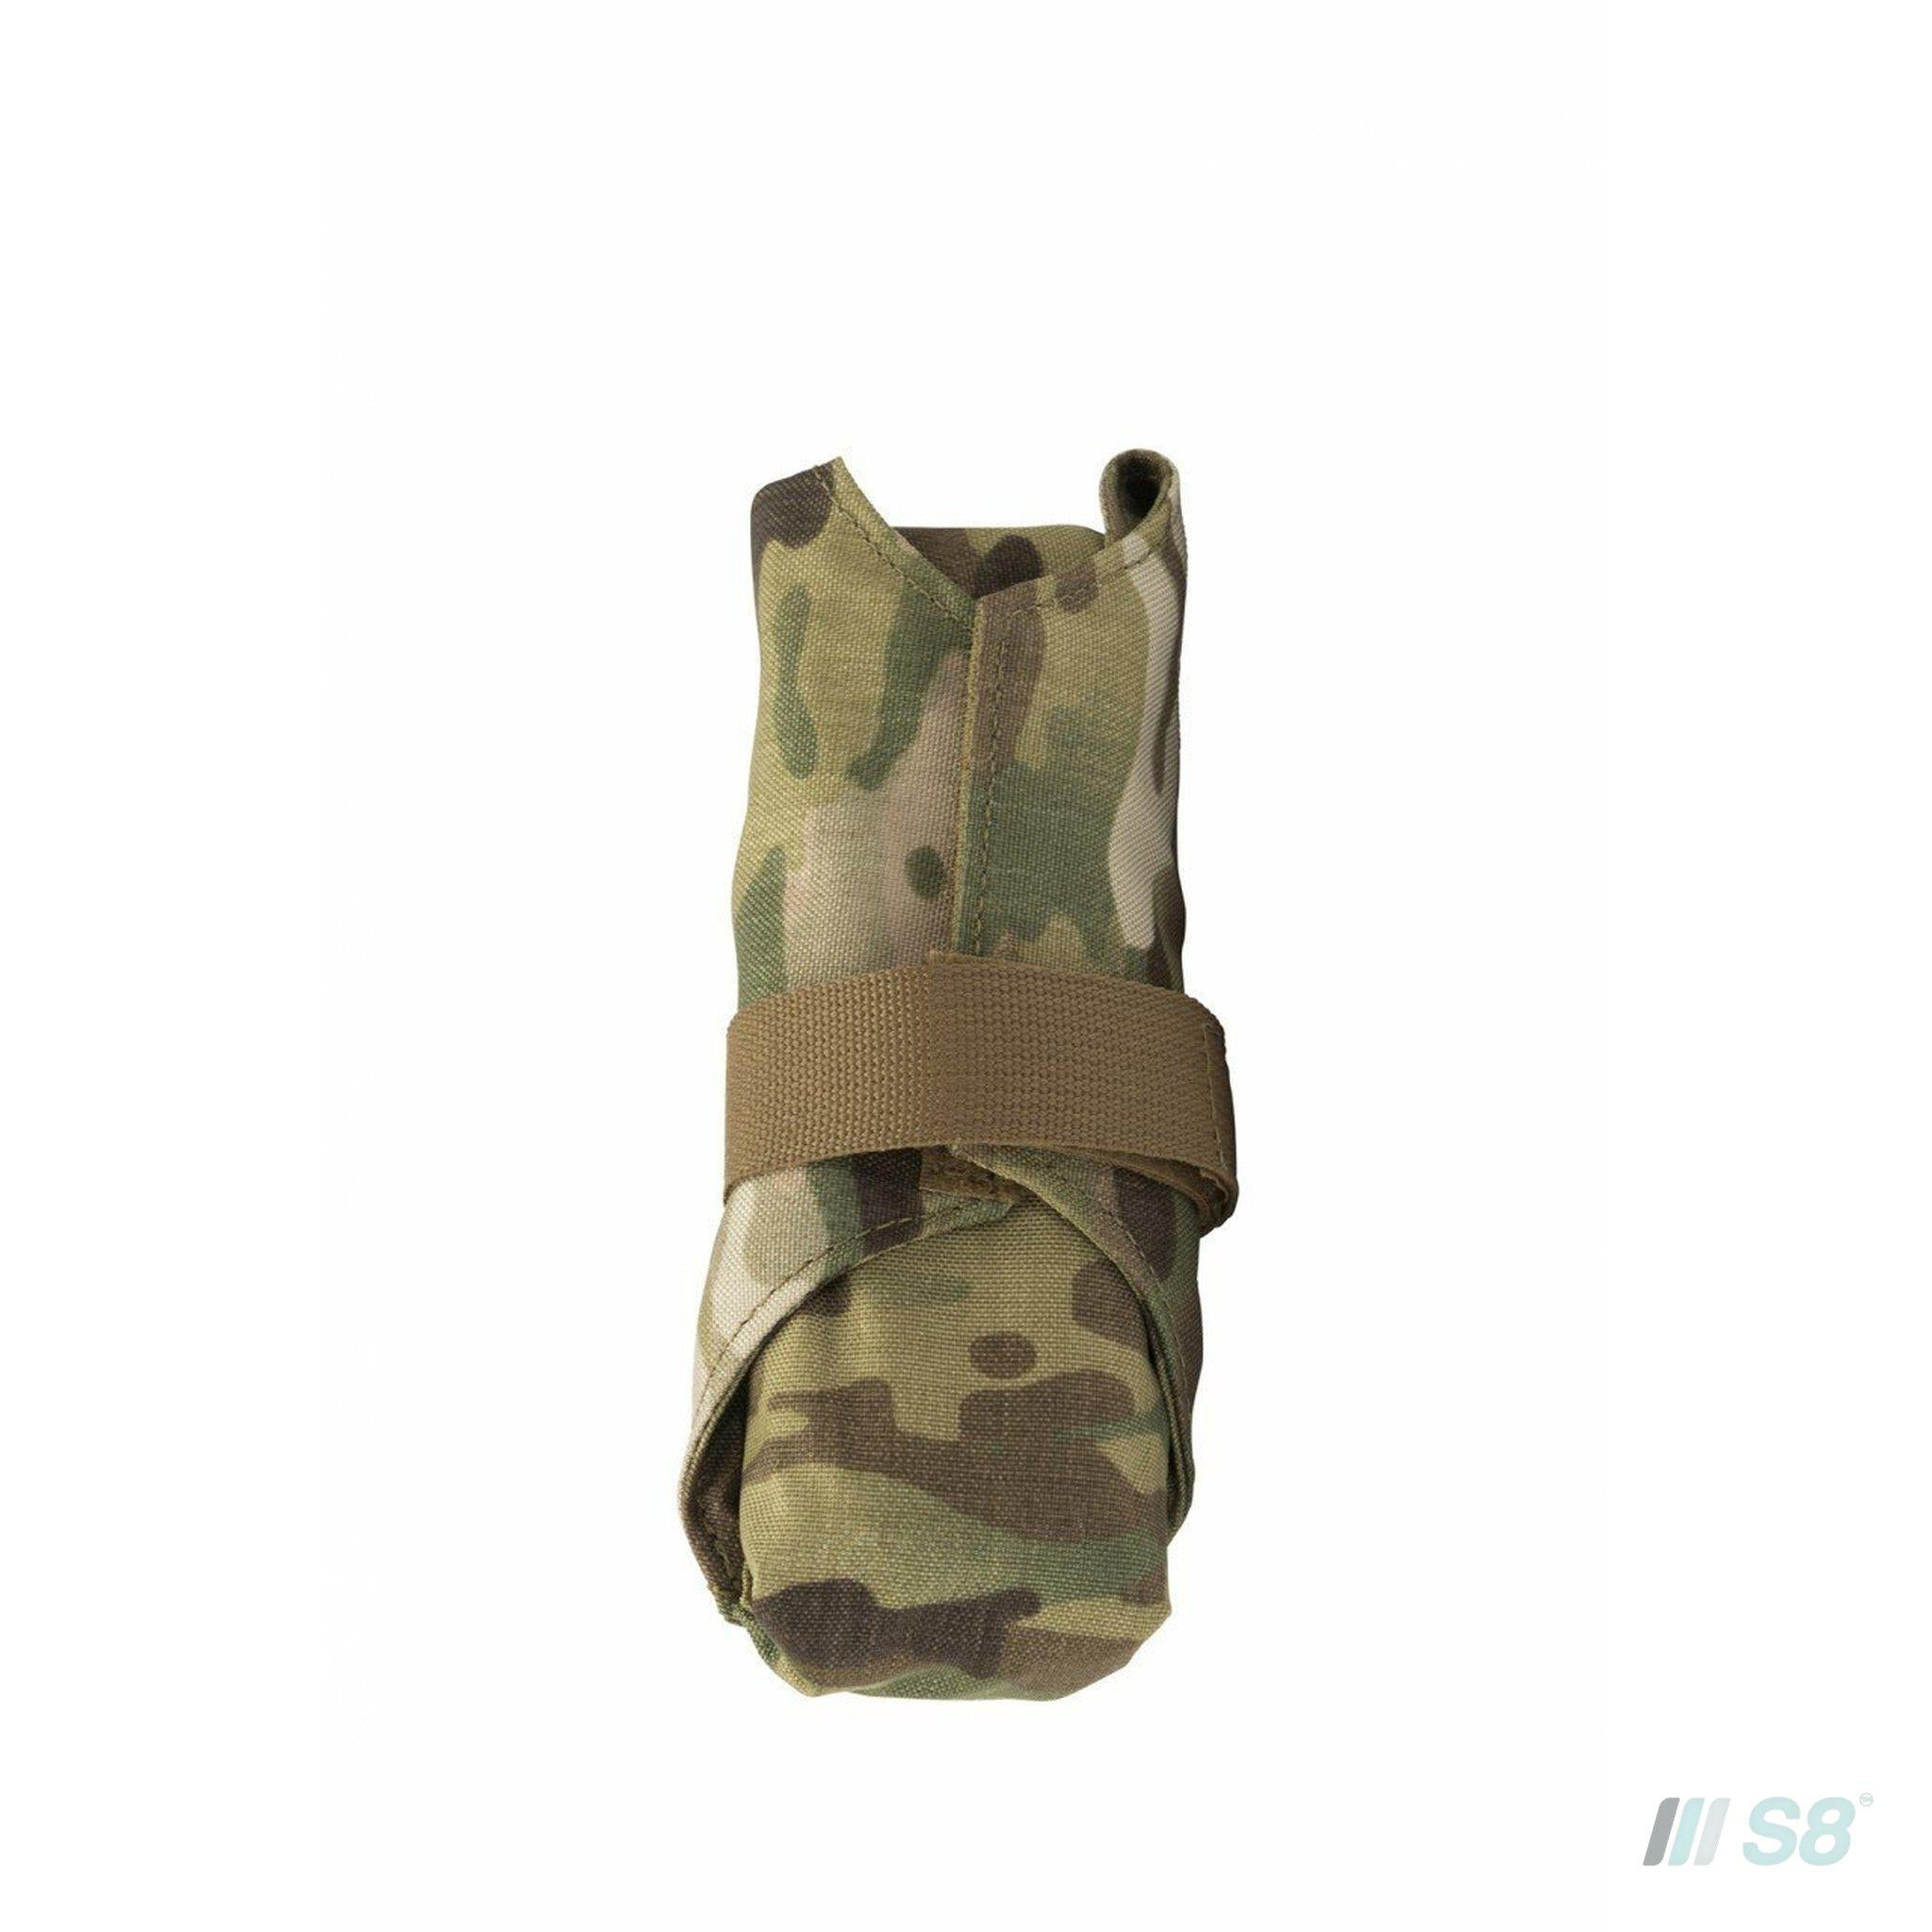 T3 Tourniquet Pouch, Gen 2-T3-S8 Products Group